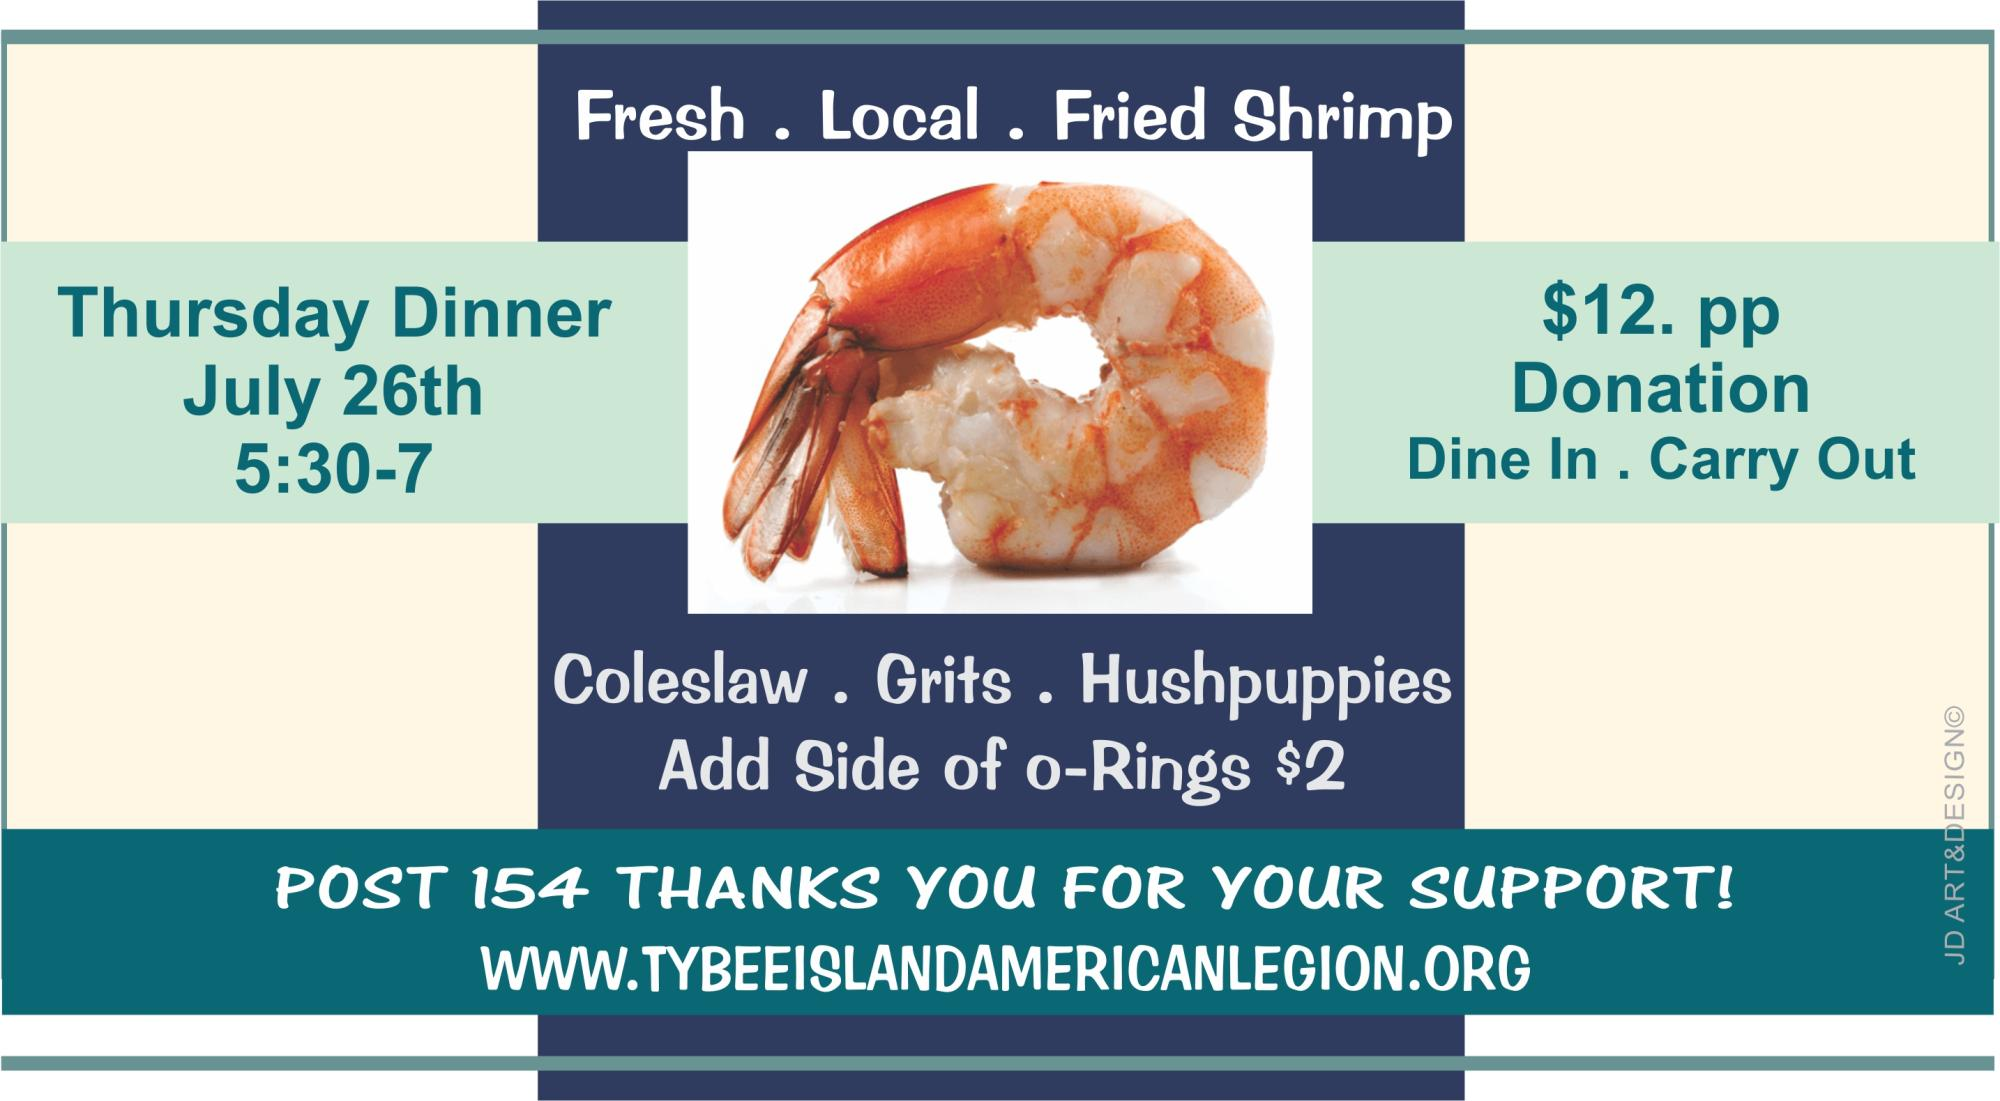 July 26th Shrimp Dinner